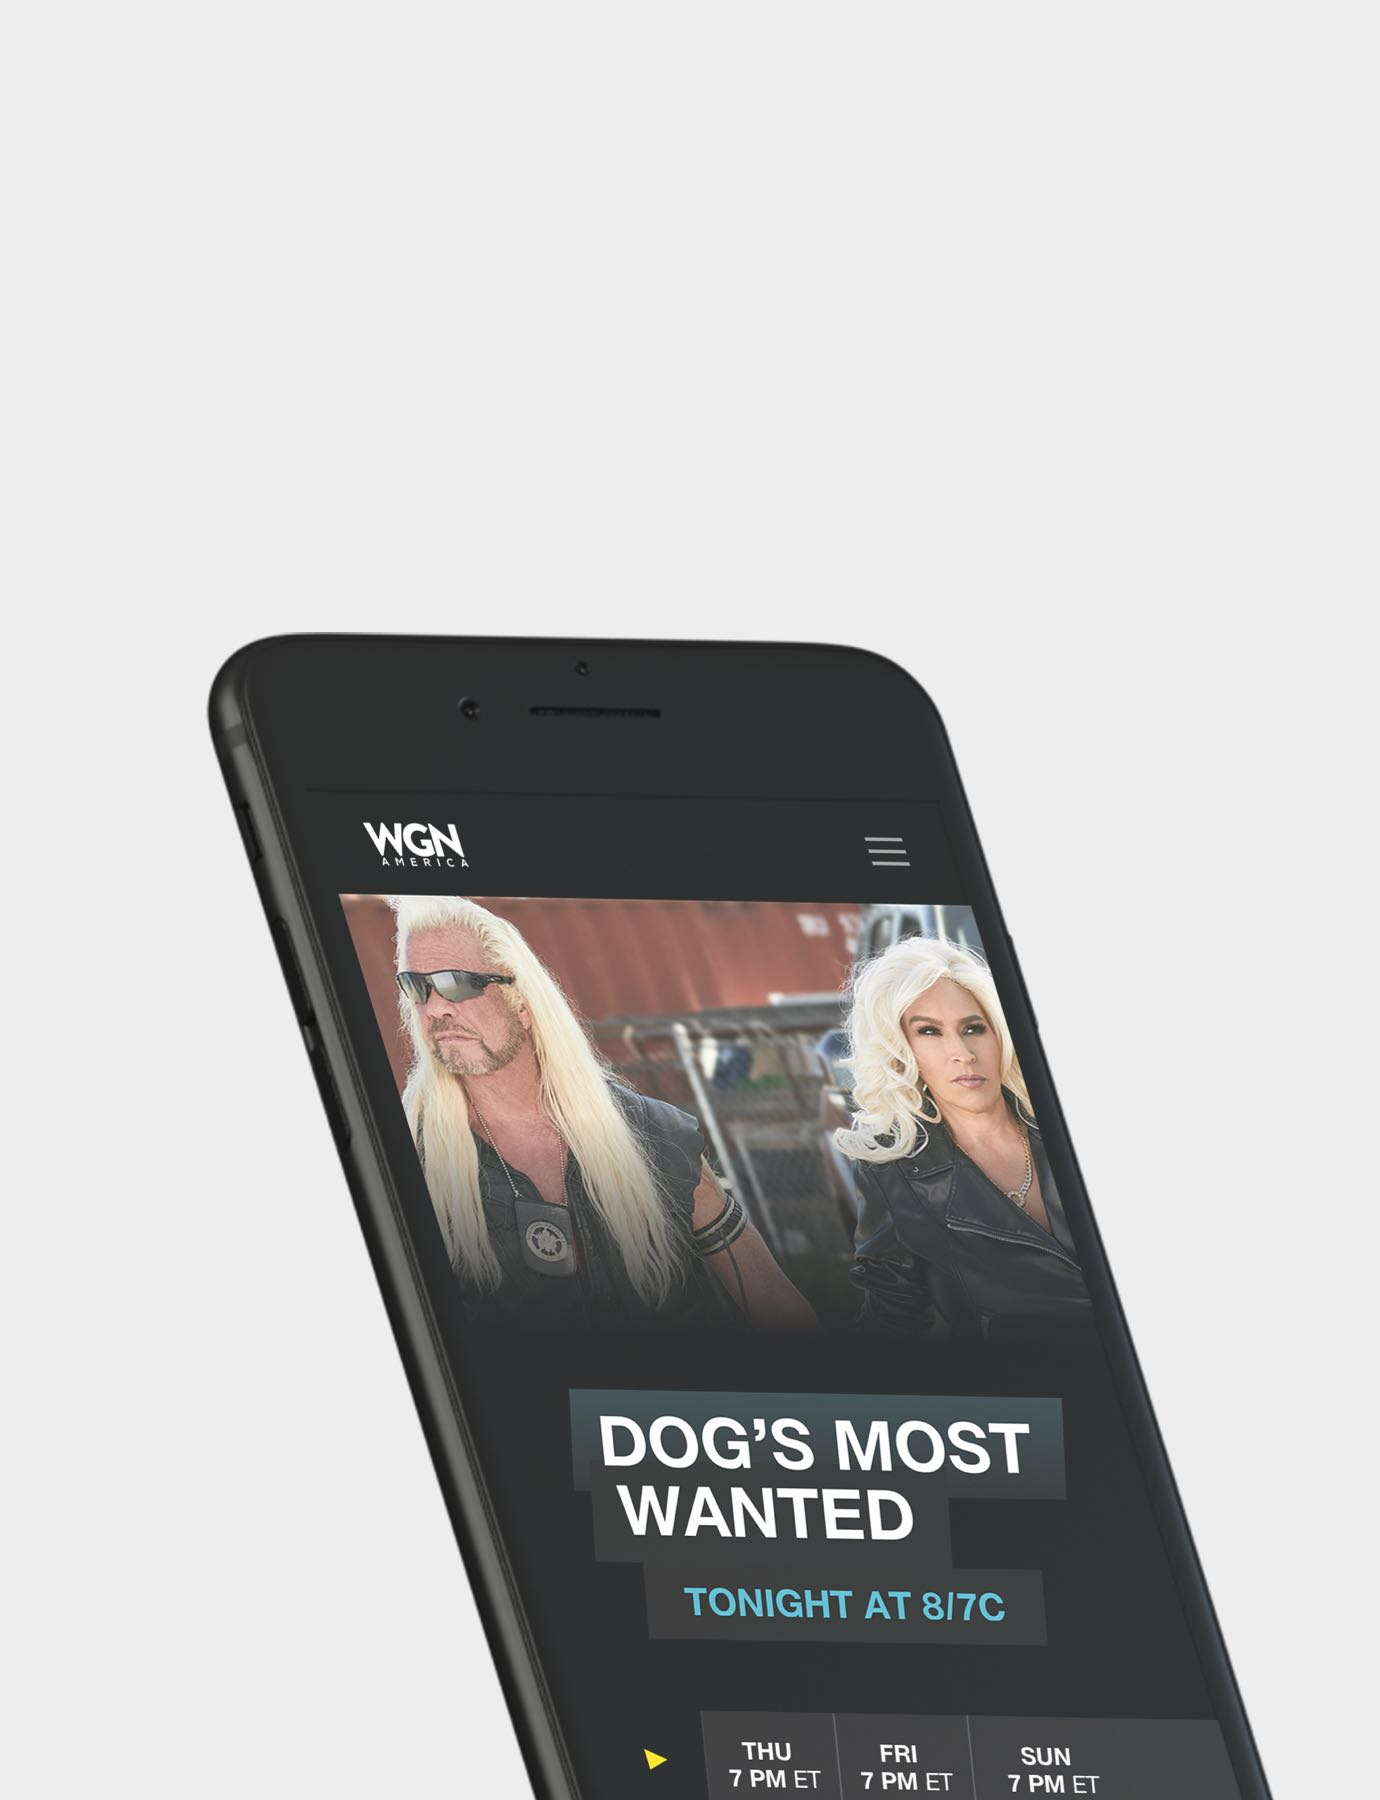 Image of WGN America website on mobile device (phone)